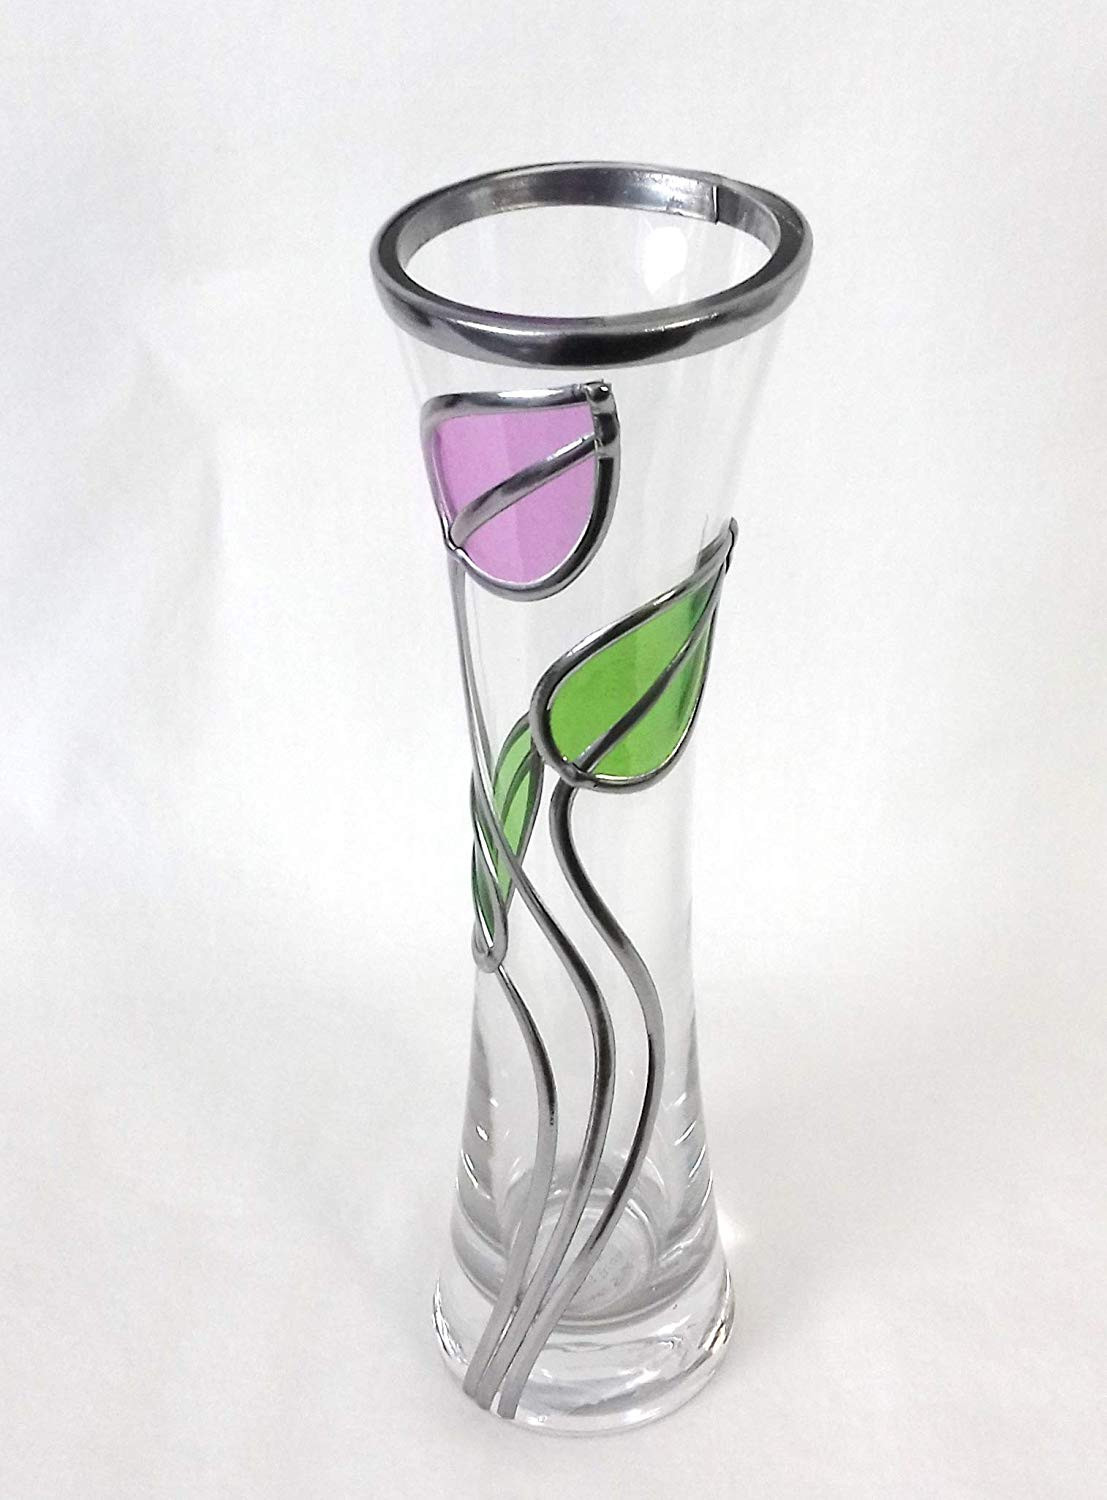 tall margarita glass vase of elegant decorative glass posy vase suitable for flowers 20 cm tall pertaining to elegant decorative glass posy vase suitable for flowers 20 cm tall rennie mackintosh style with art deco and art nouveau influences